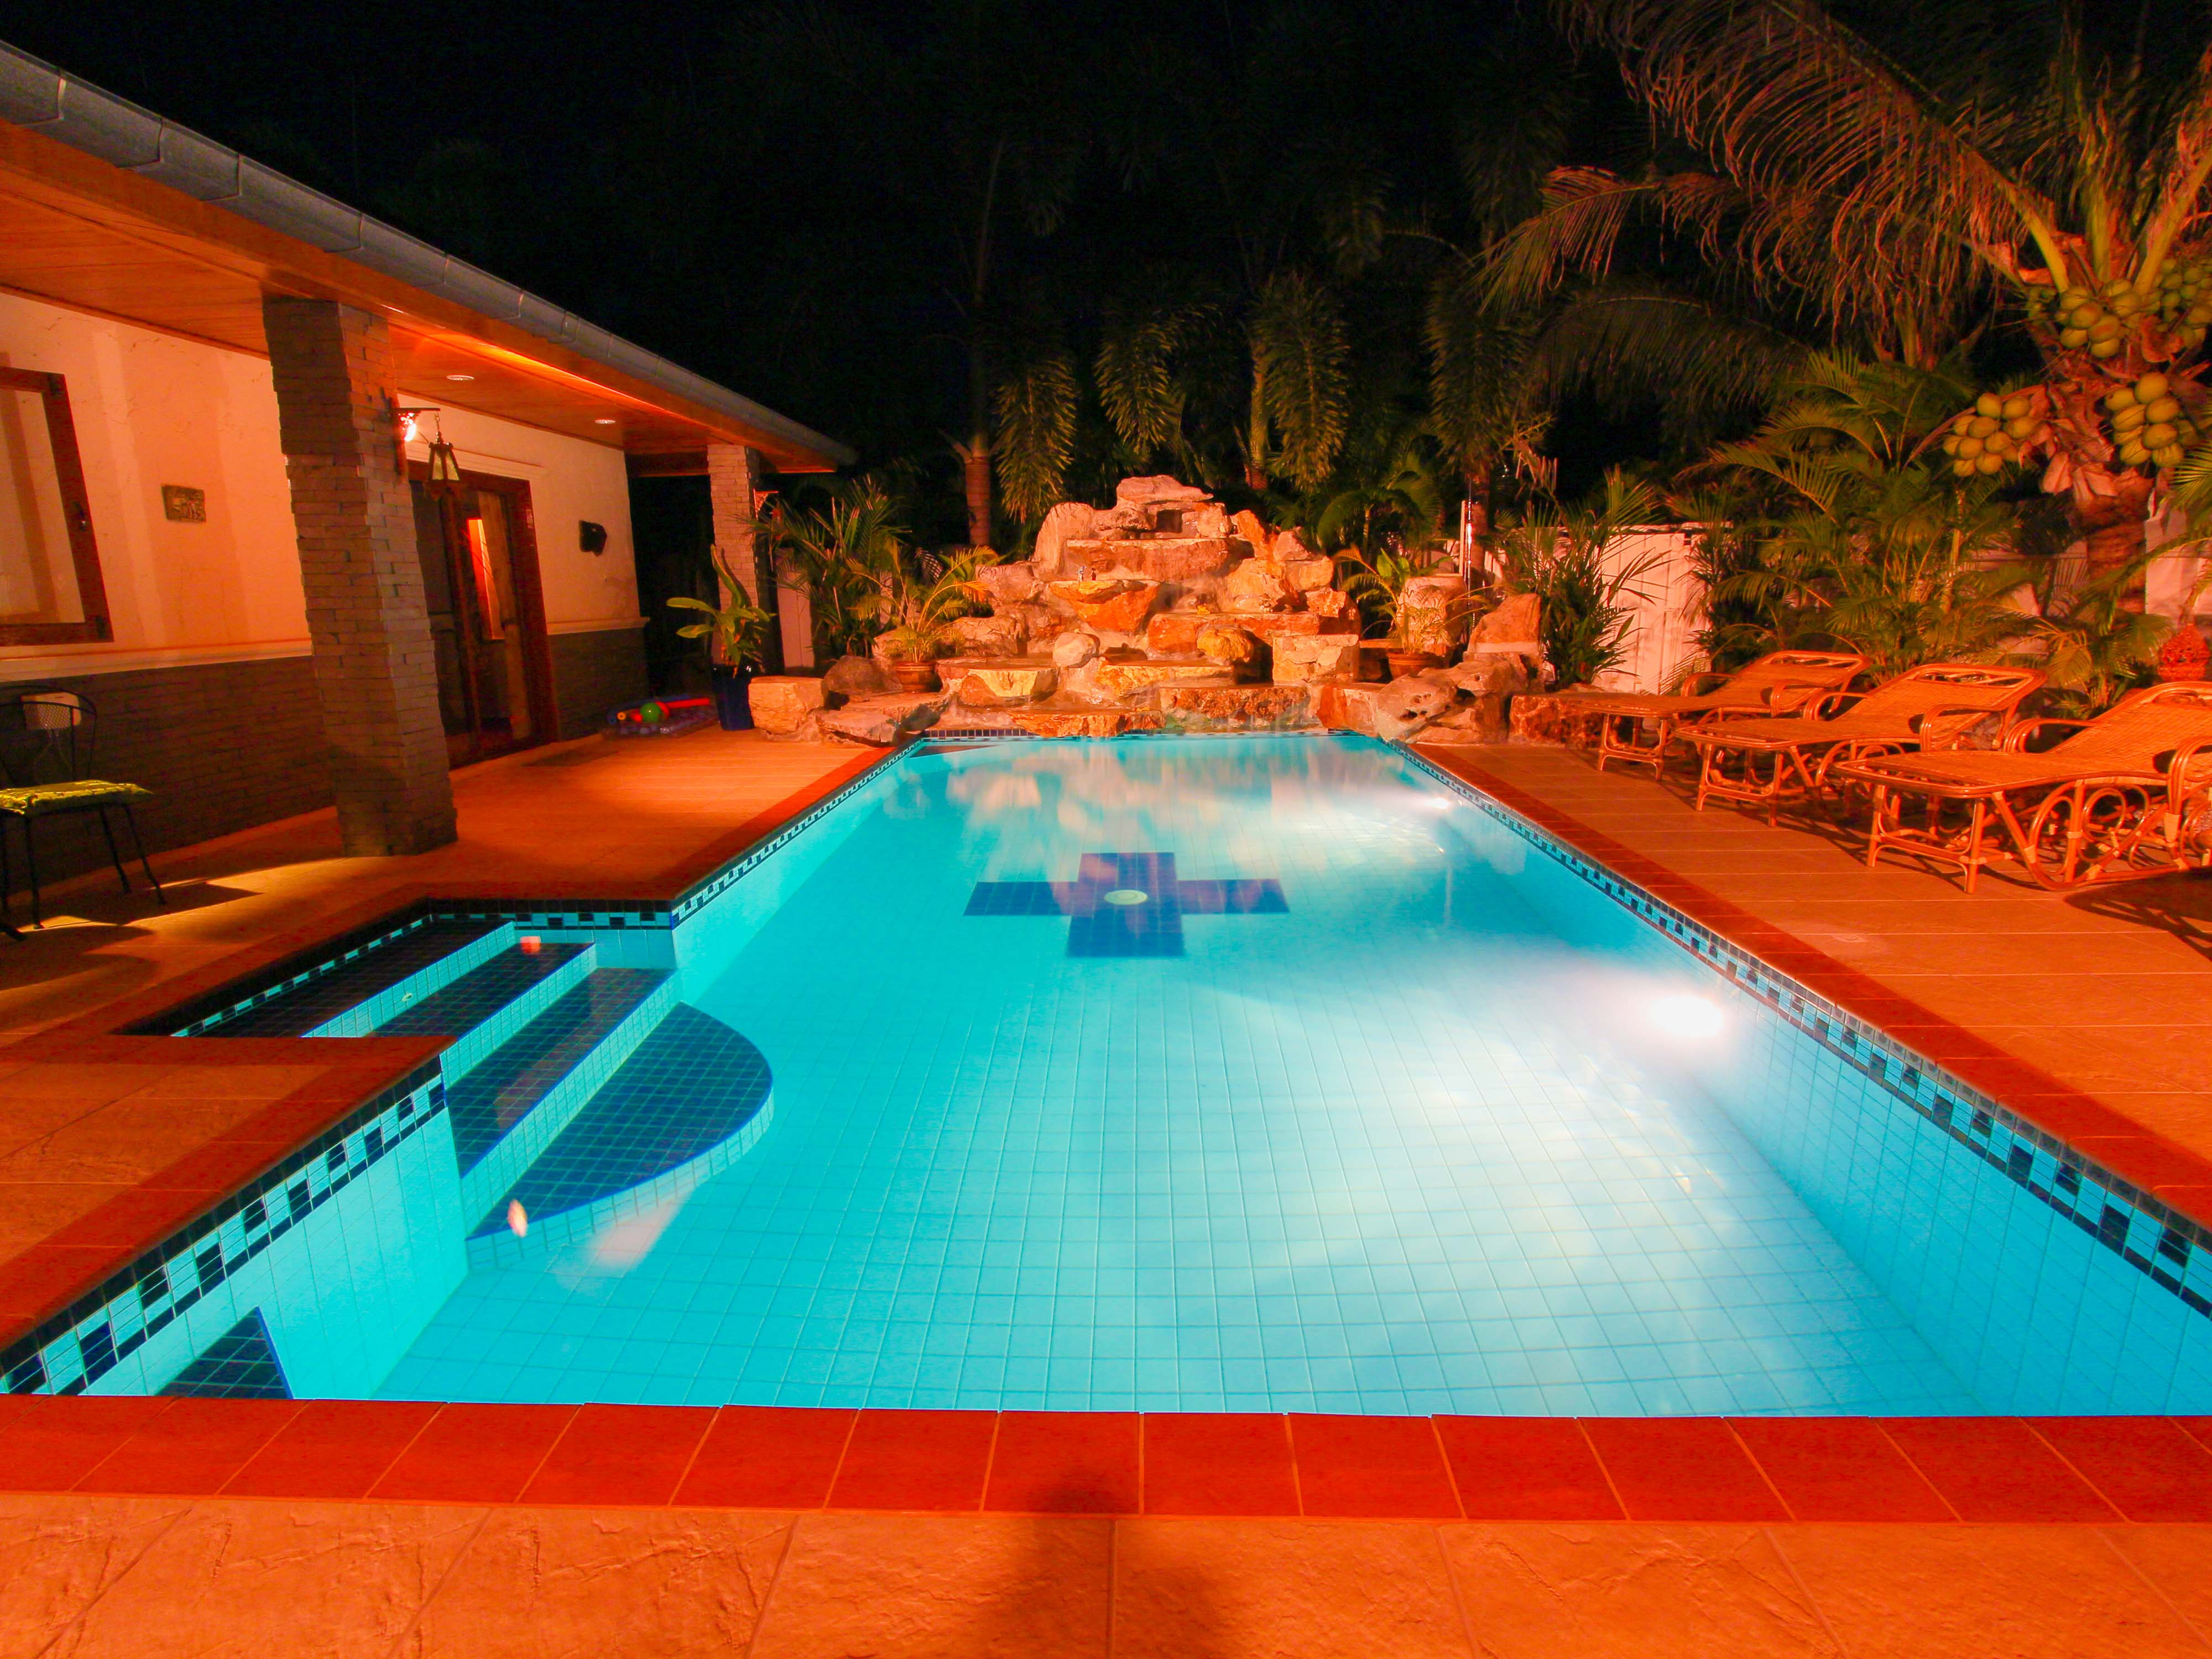 3 Bed villa  with pool + 2 Bed flat on 800 sq meters Land